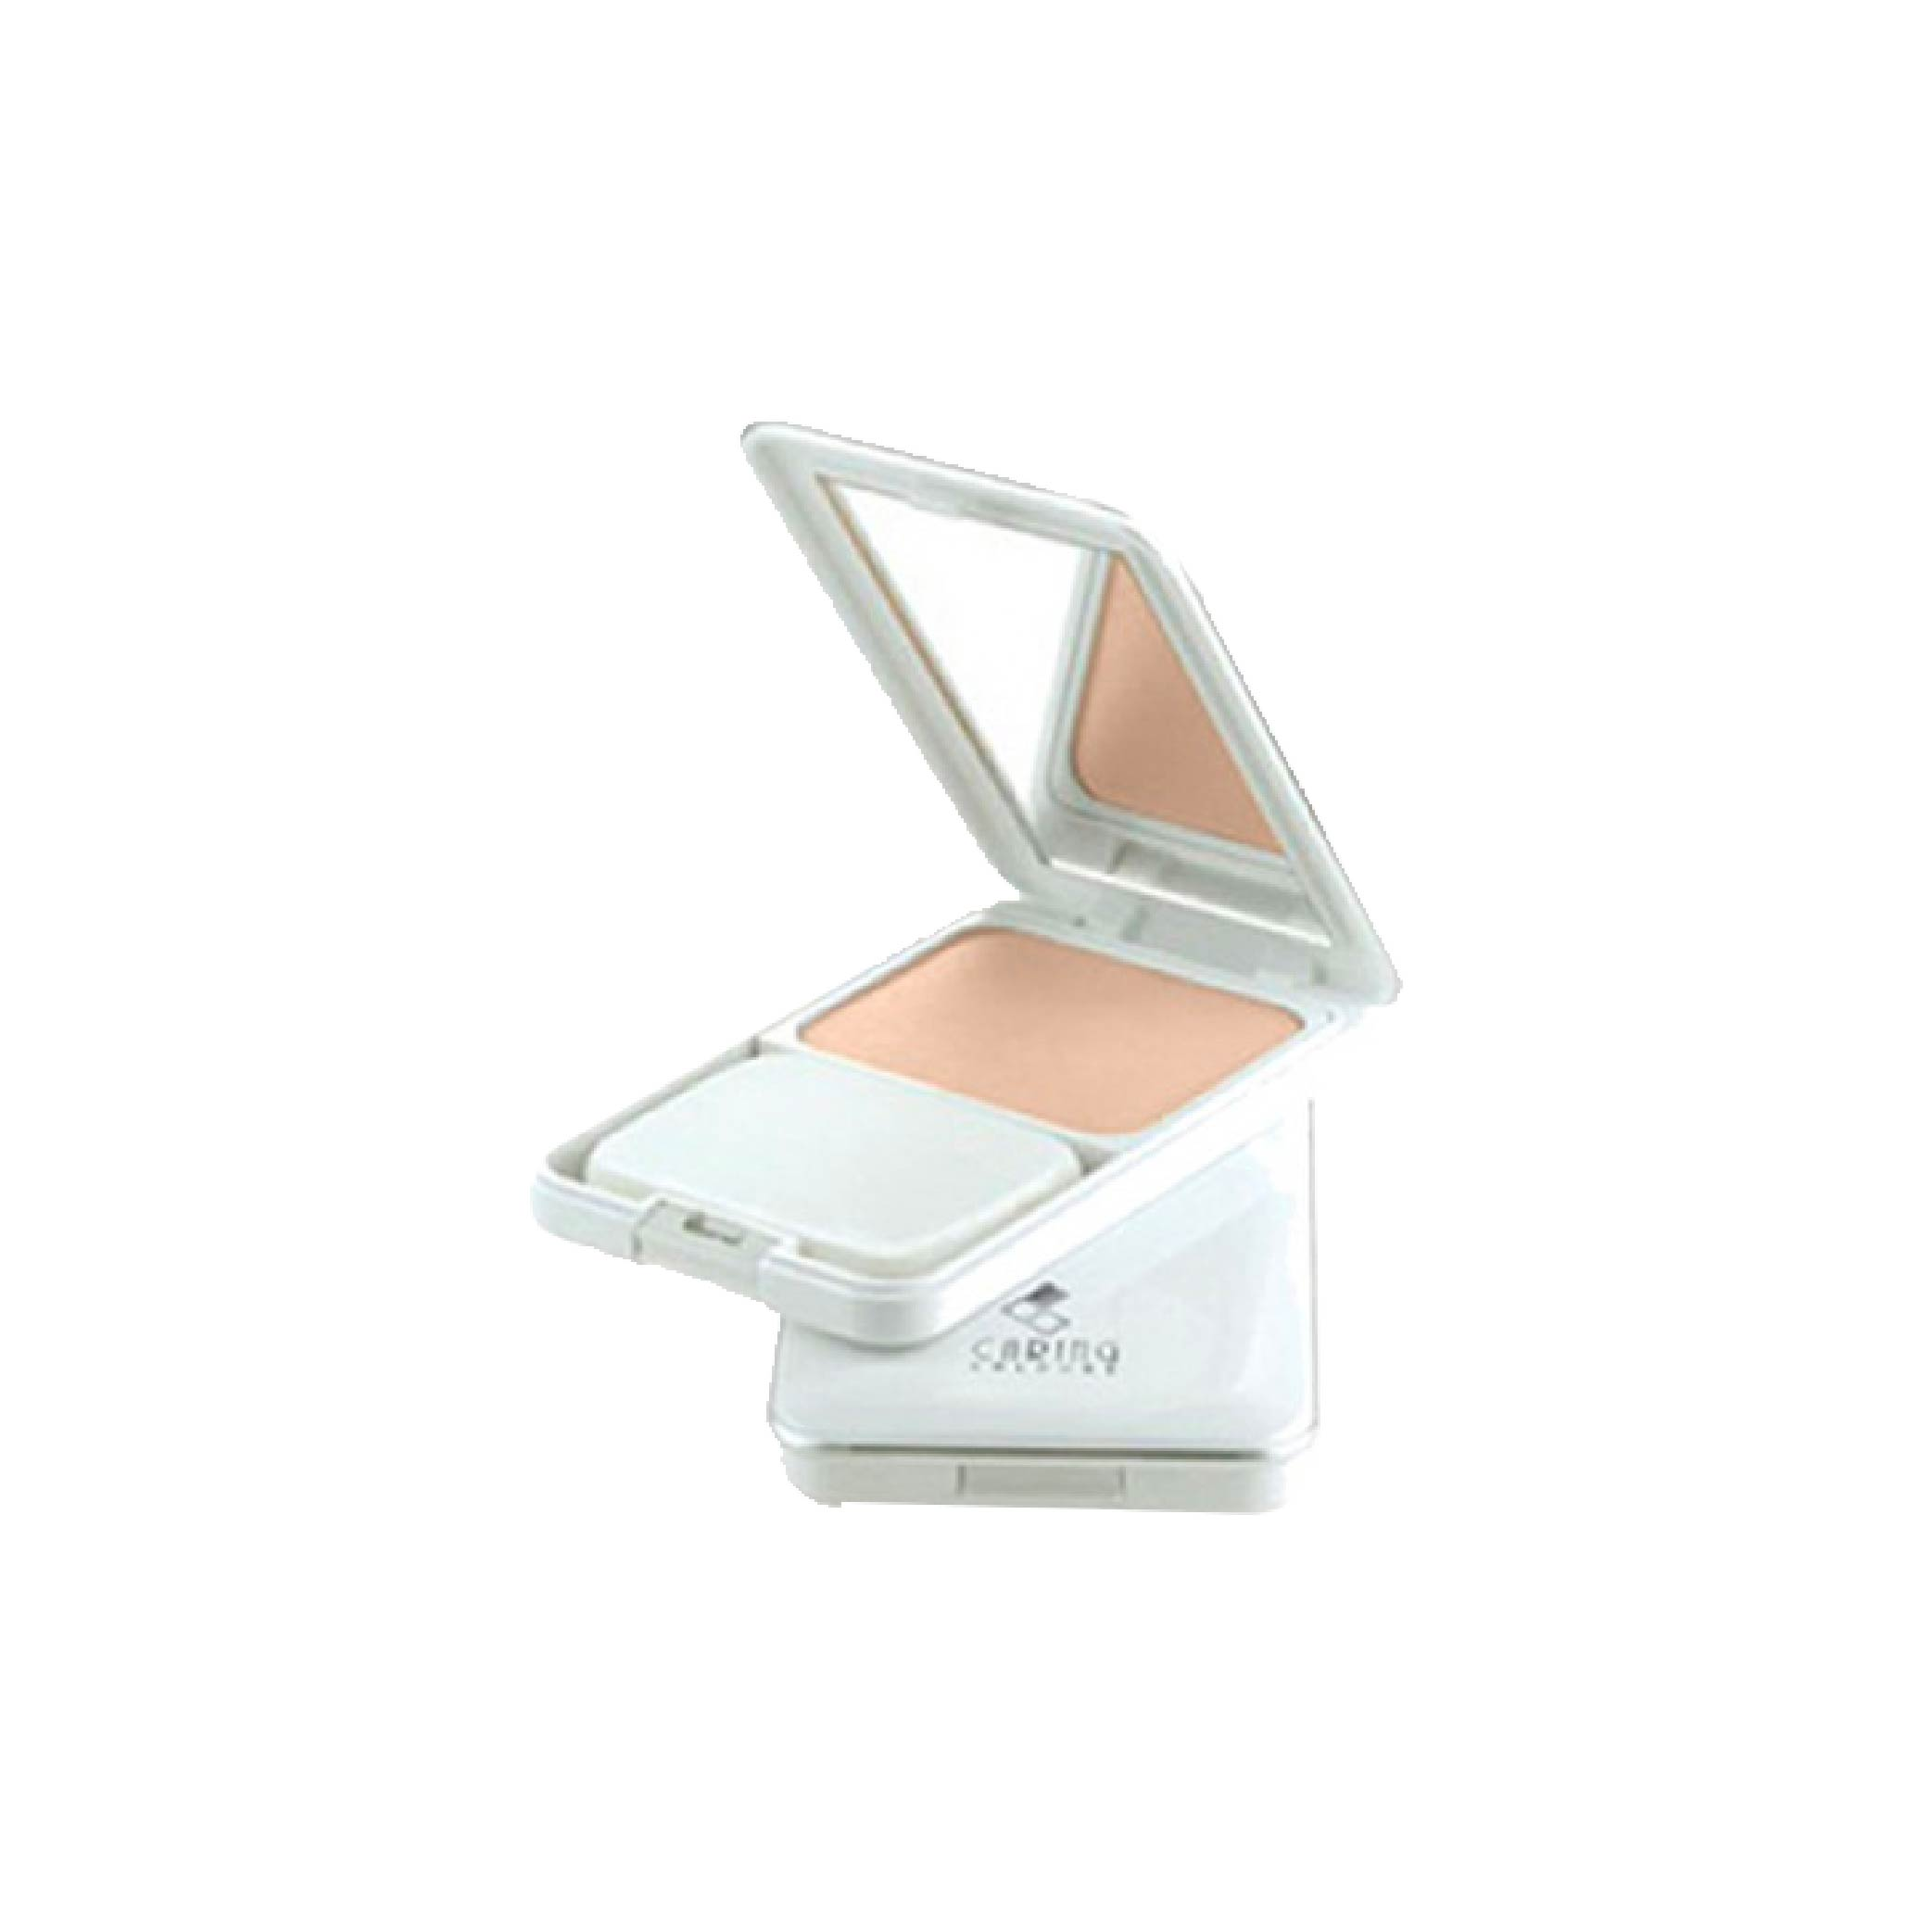 Caring-Colours-Extra-Protection-Dual-Action-Cake-Powder